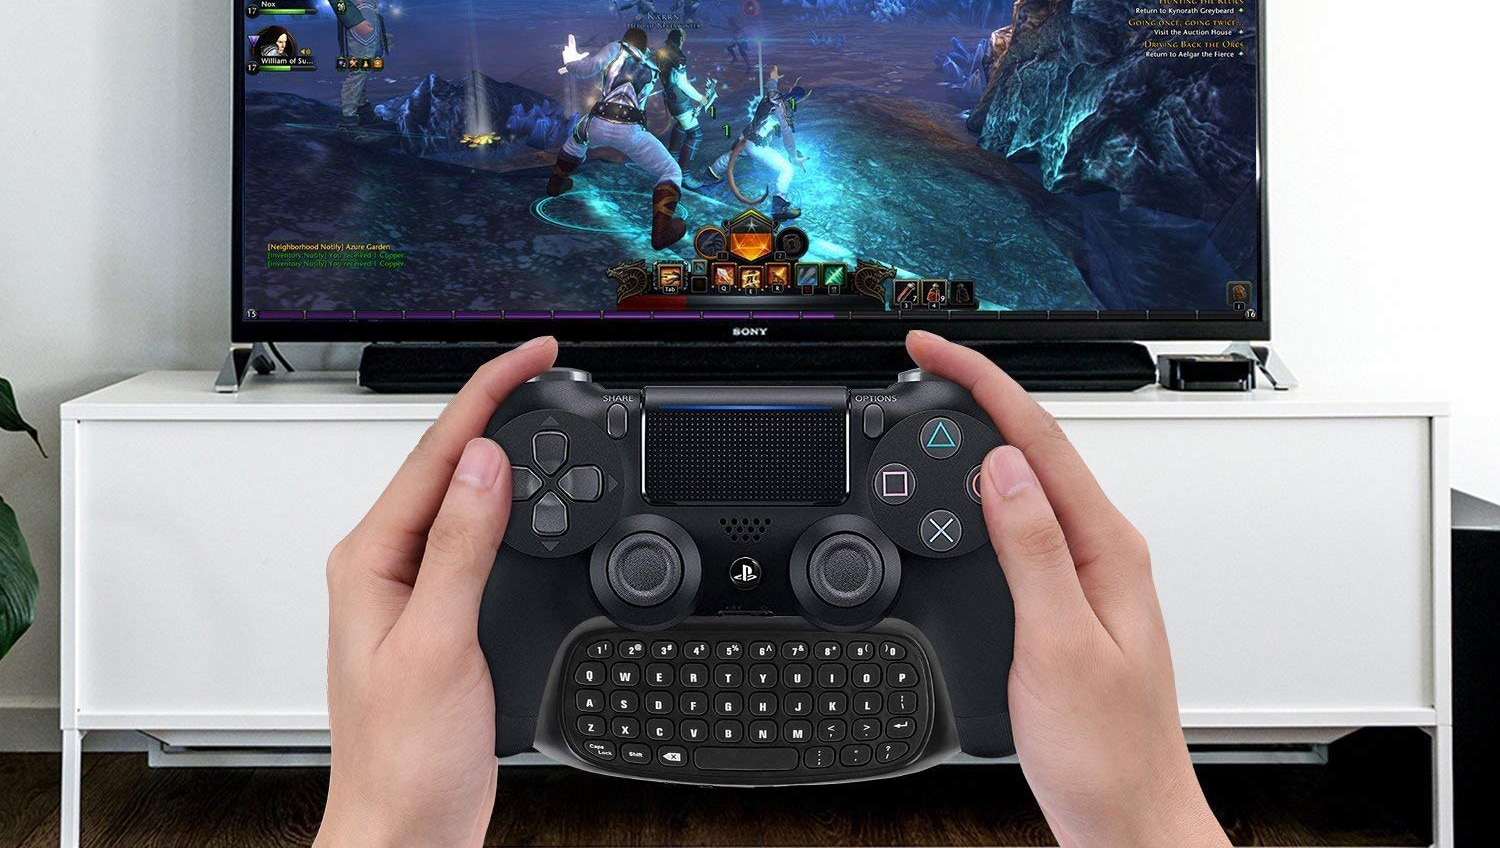 Top 10 Best Ps4 Controller Keyboard In 2020 Reviews I Guide